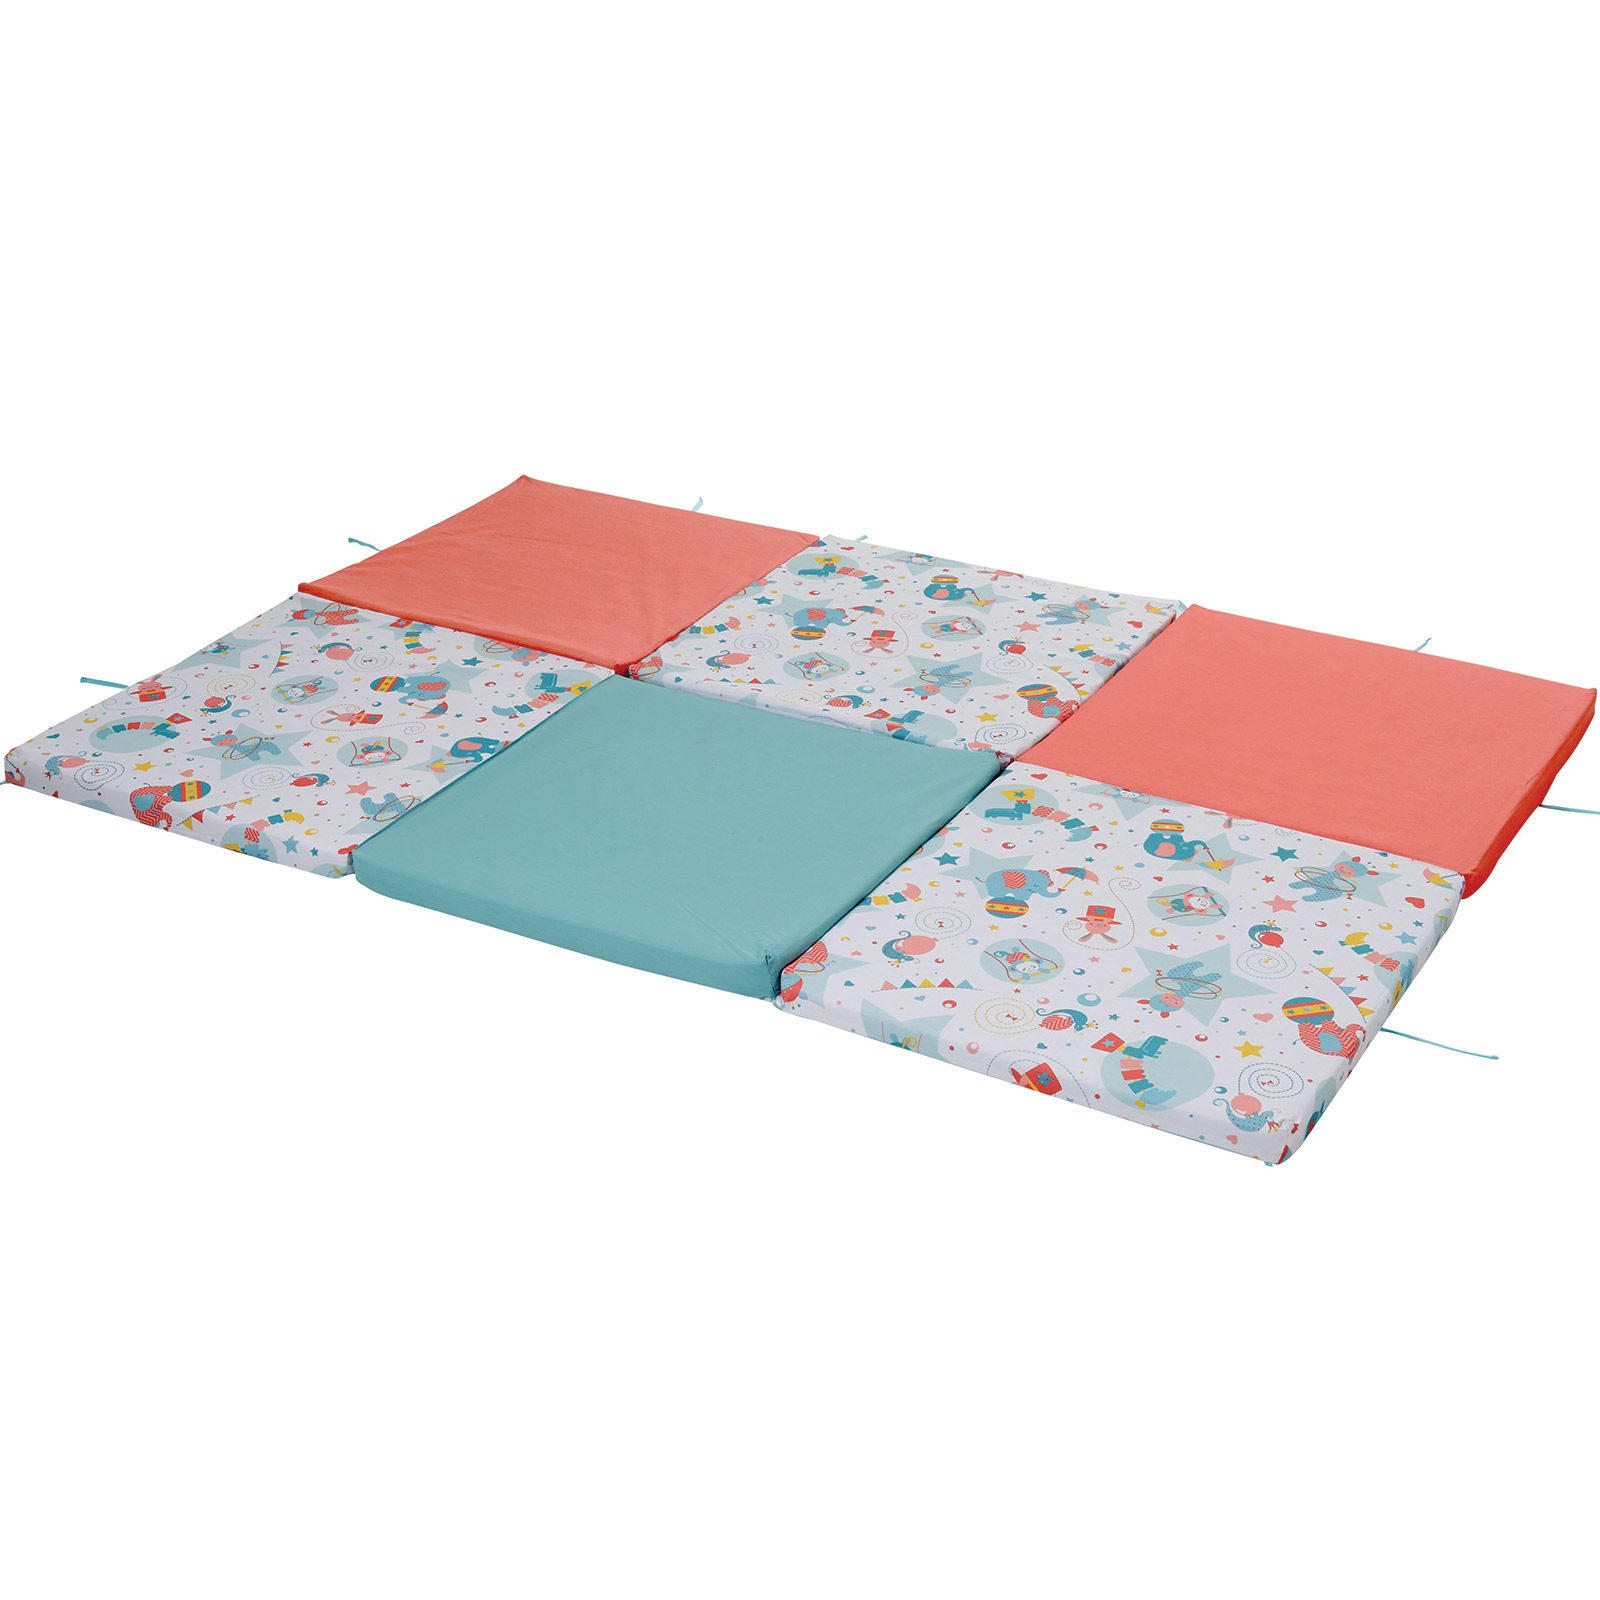 Grand Tapis Enfant Awesome Tapis De Jeu Bebe 1 An Gallery Awesome Interior